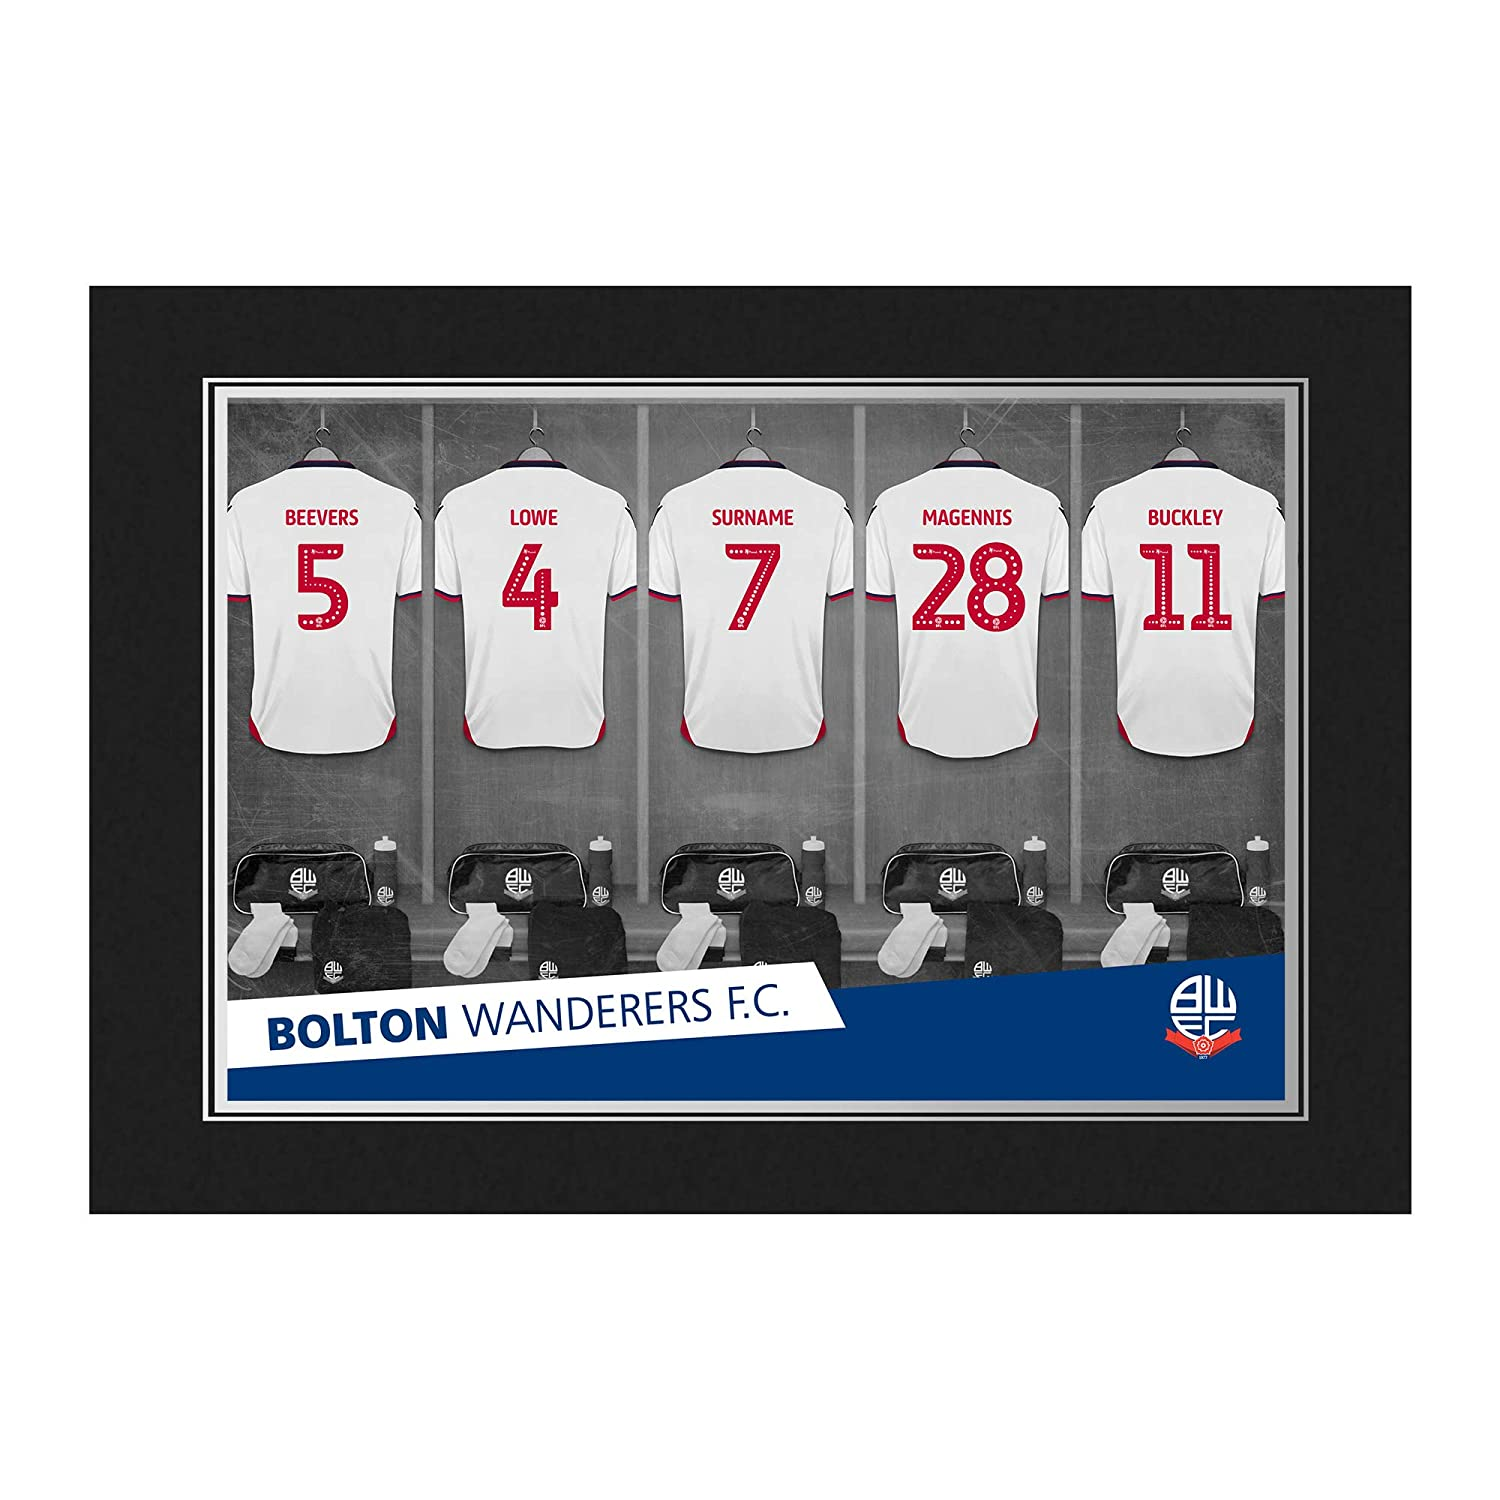 Official PERSONALISED Bolton Wanderers FC 9 x 6 Dressing Room Photo Folder - FREE PERSONALISATION Content Gateway